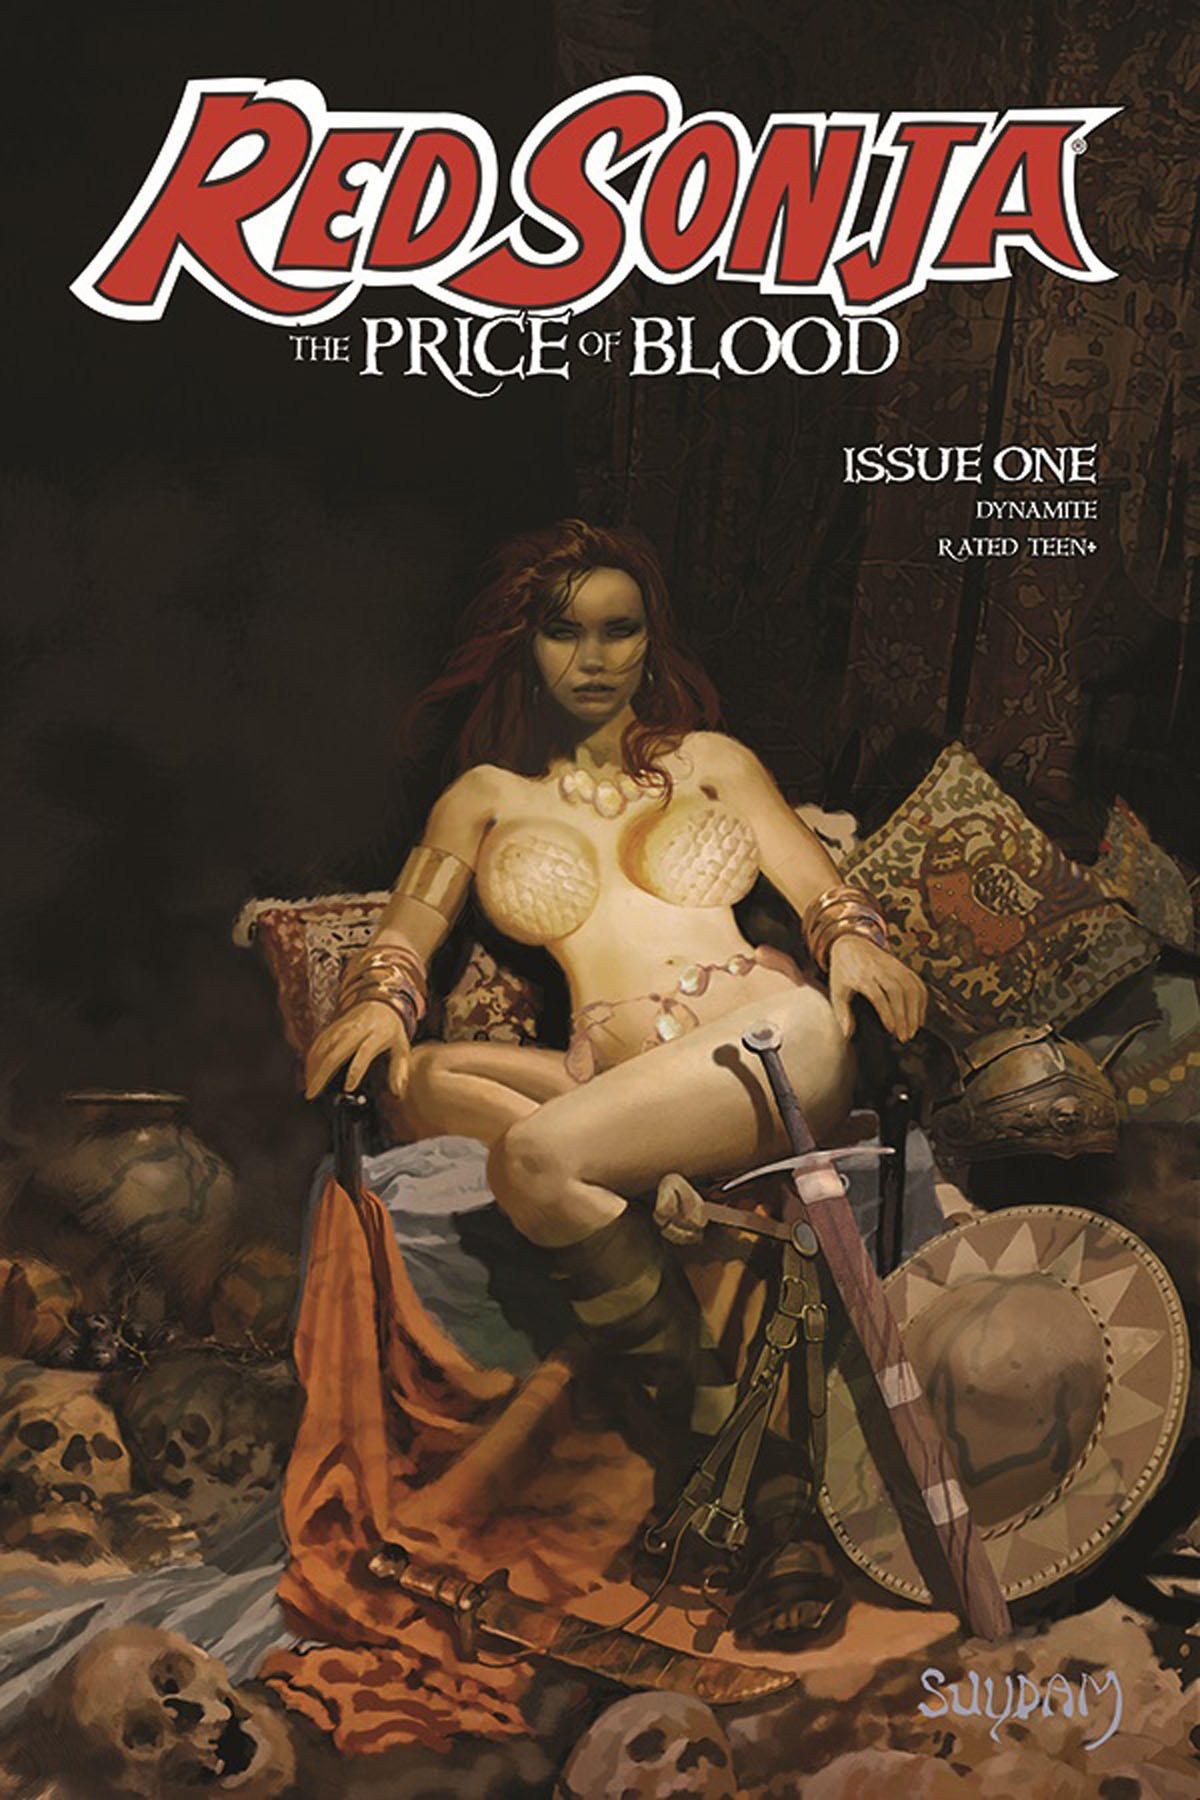 Red Sonja: The Price of Blood #1 cover A - Suydam